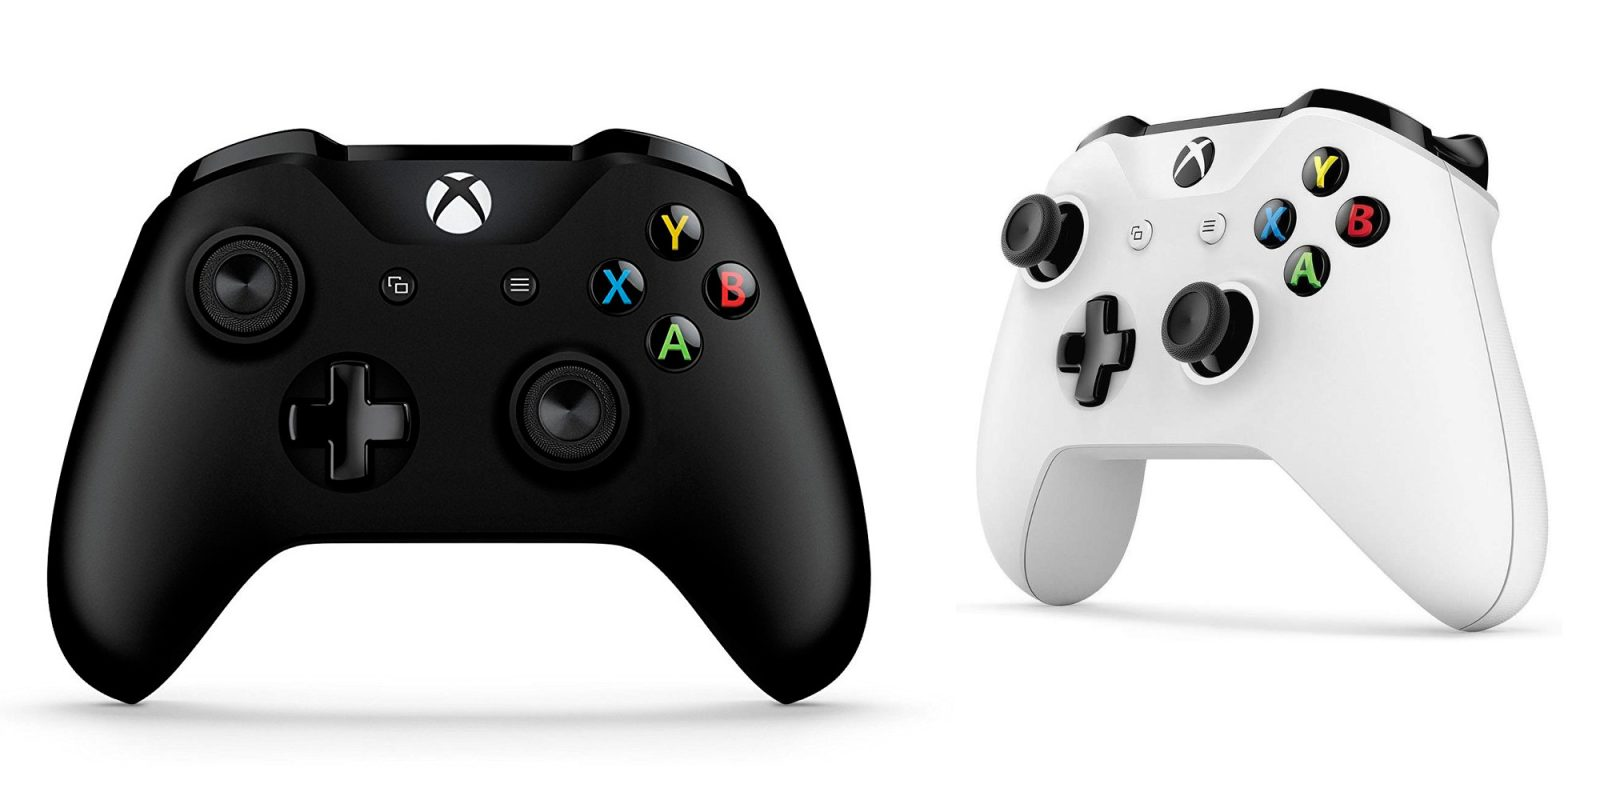 Grab an extra Microsoft Xbox Wireless Controller for $36 shipped